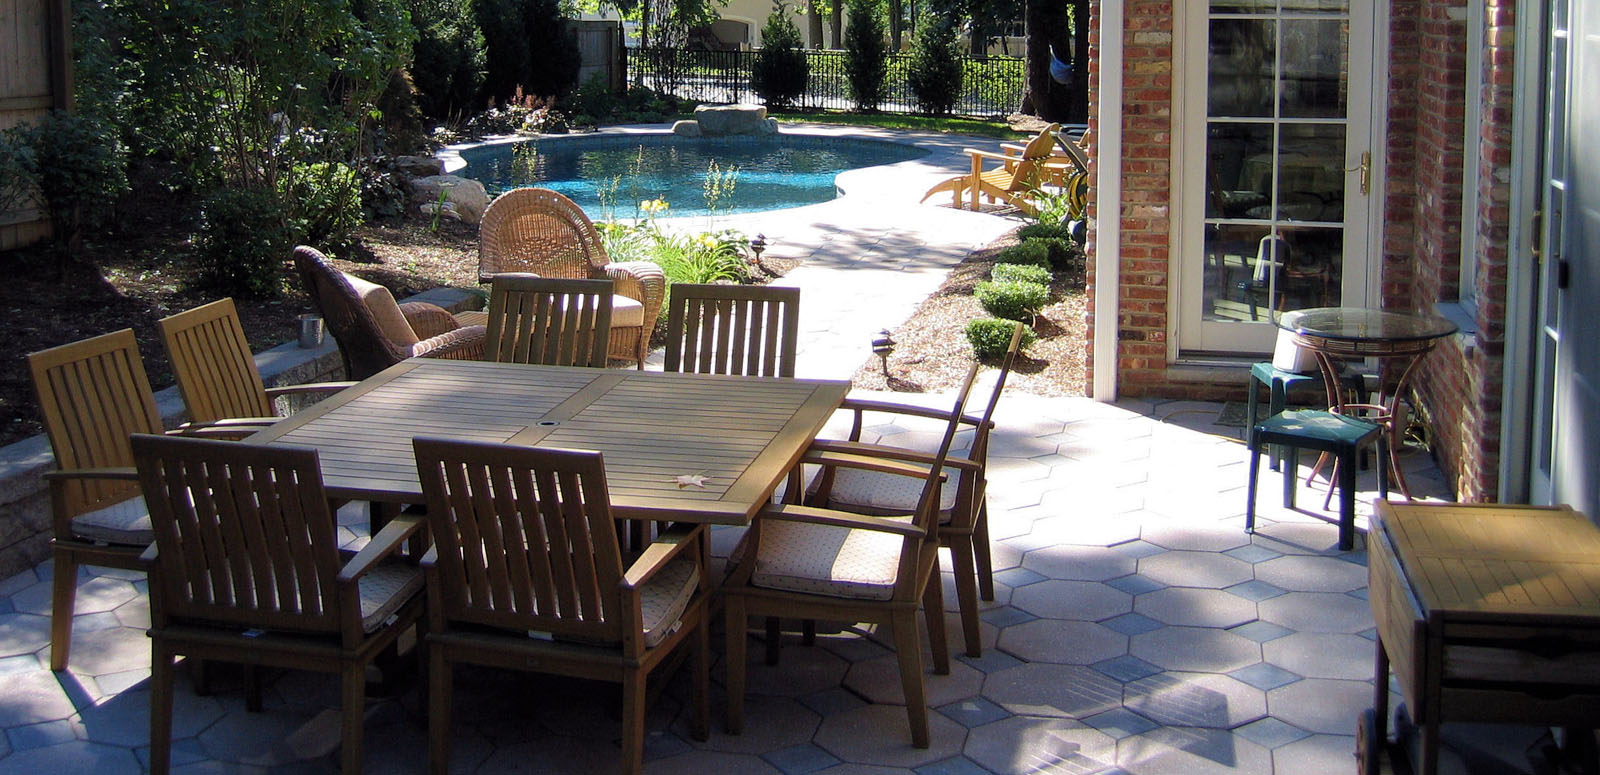 Paver Patio with Pool in Background - NJ